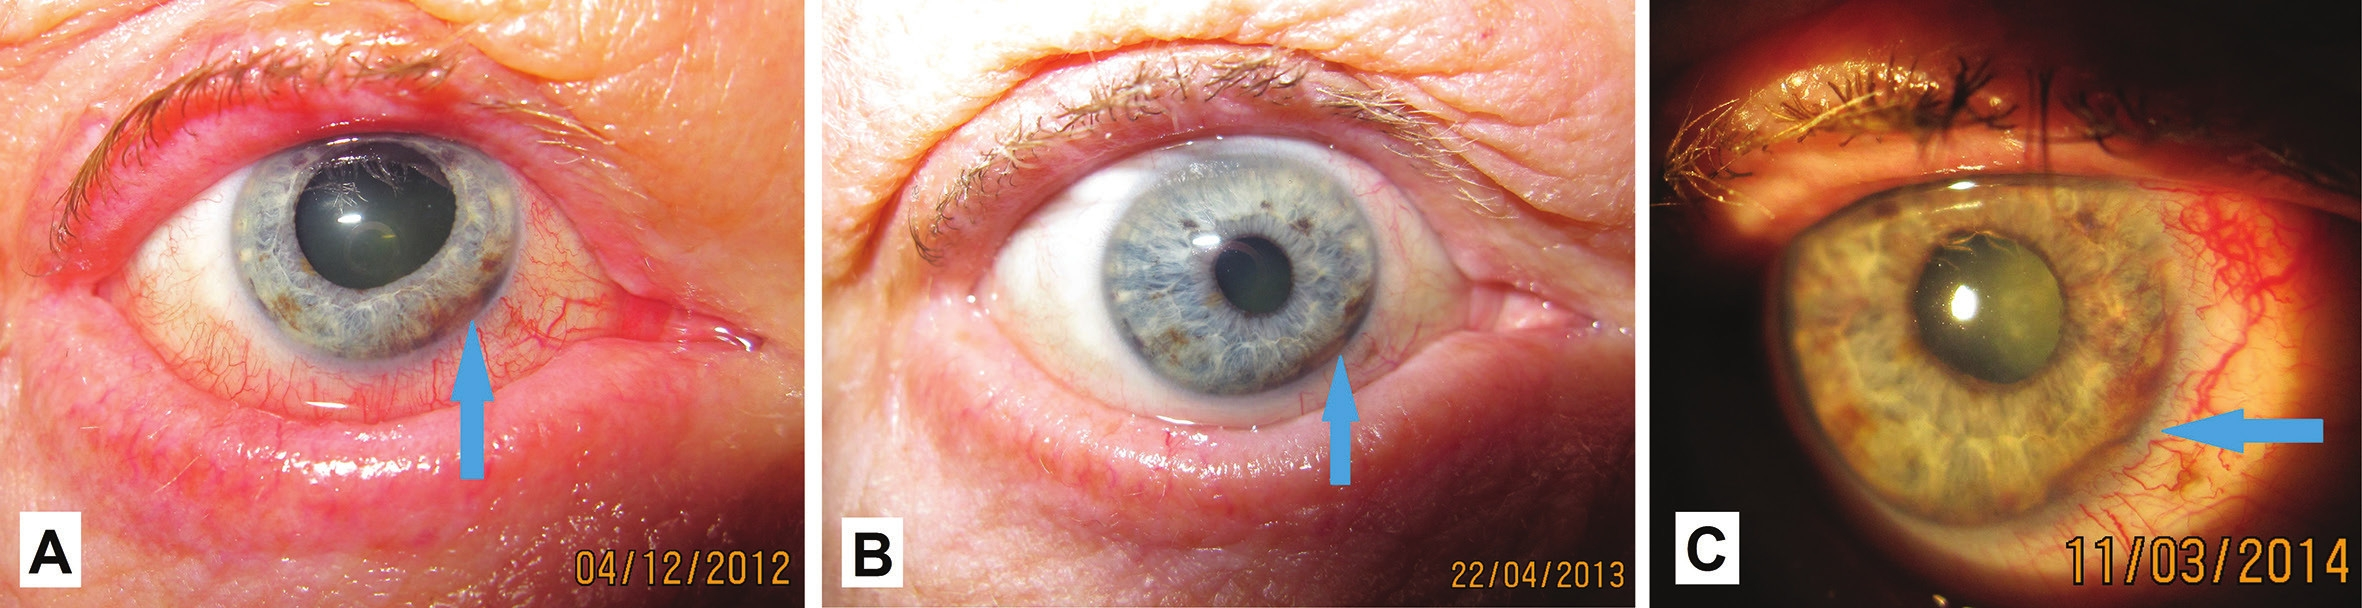 Macro photo of anterior segment of eye of patient in 2012 (A), 2013 (B) and 2014 ©